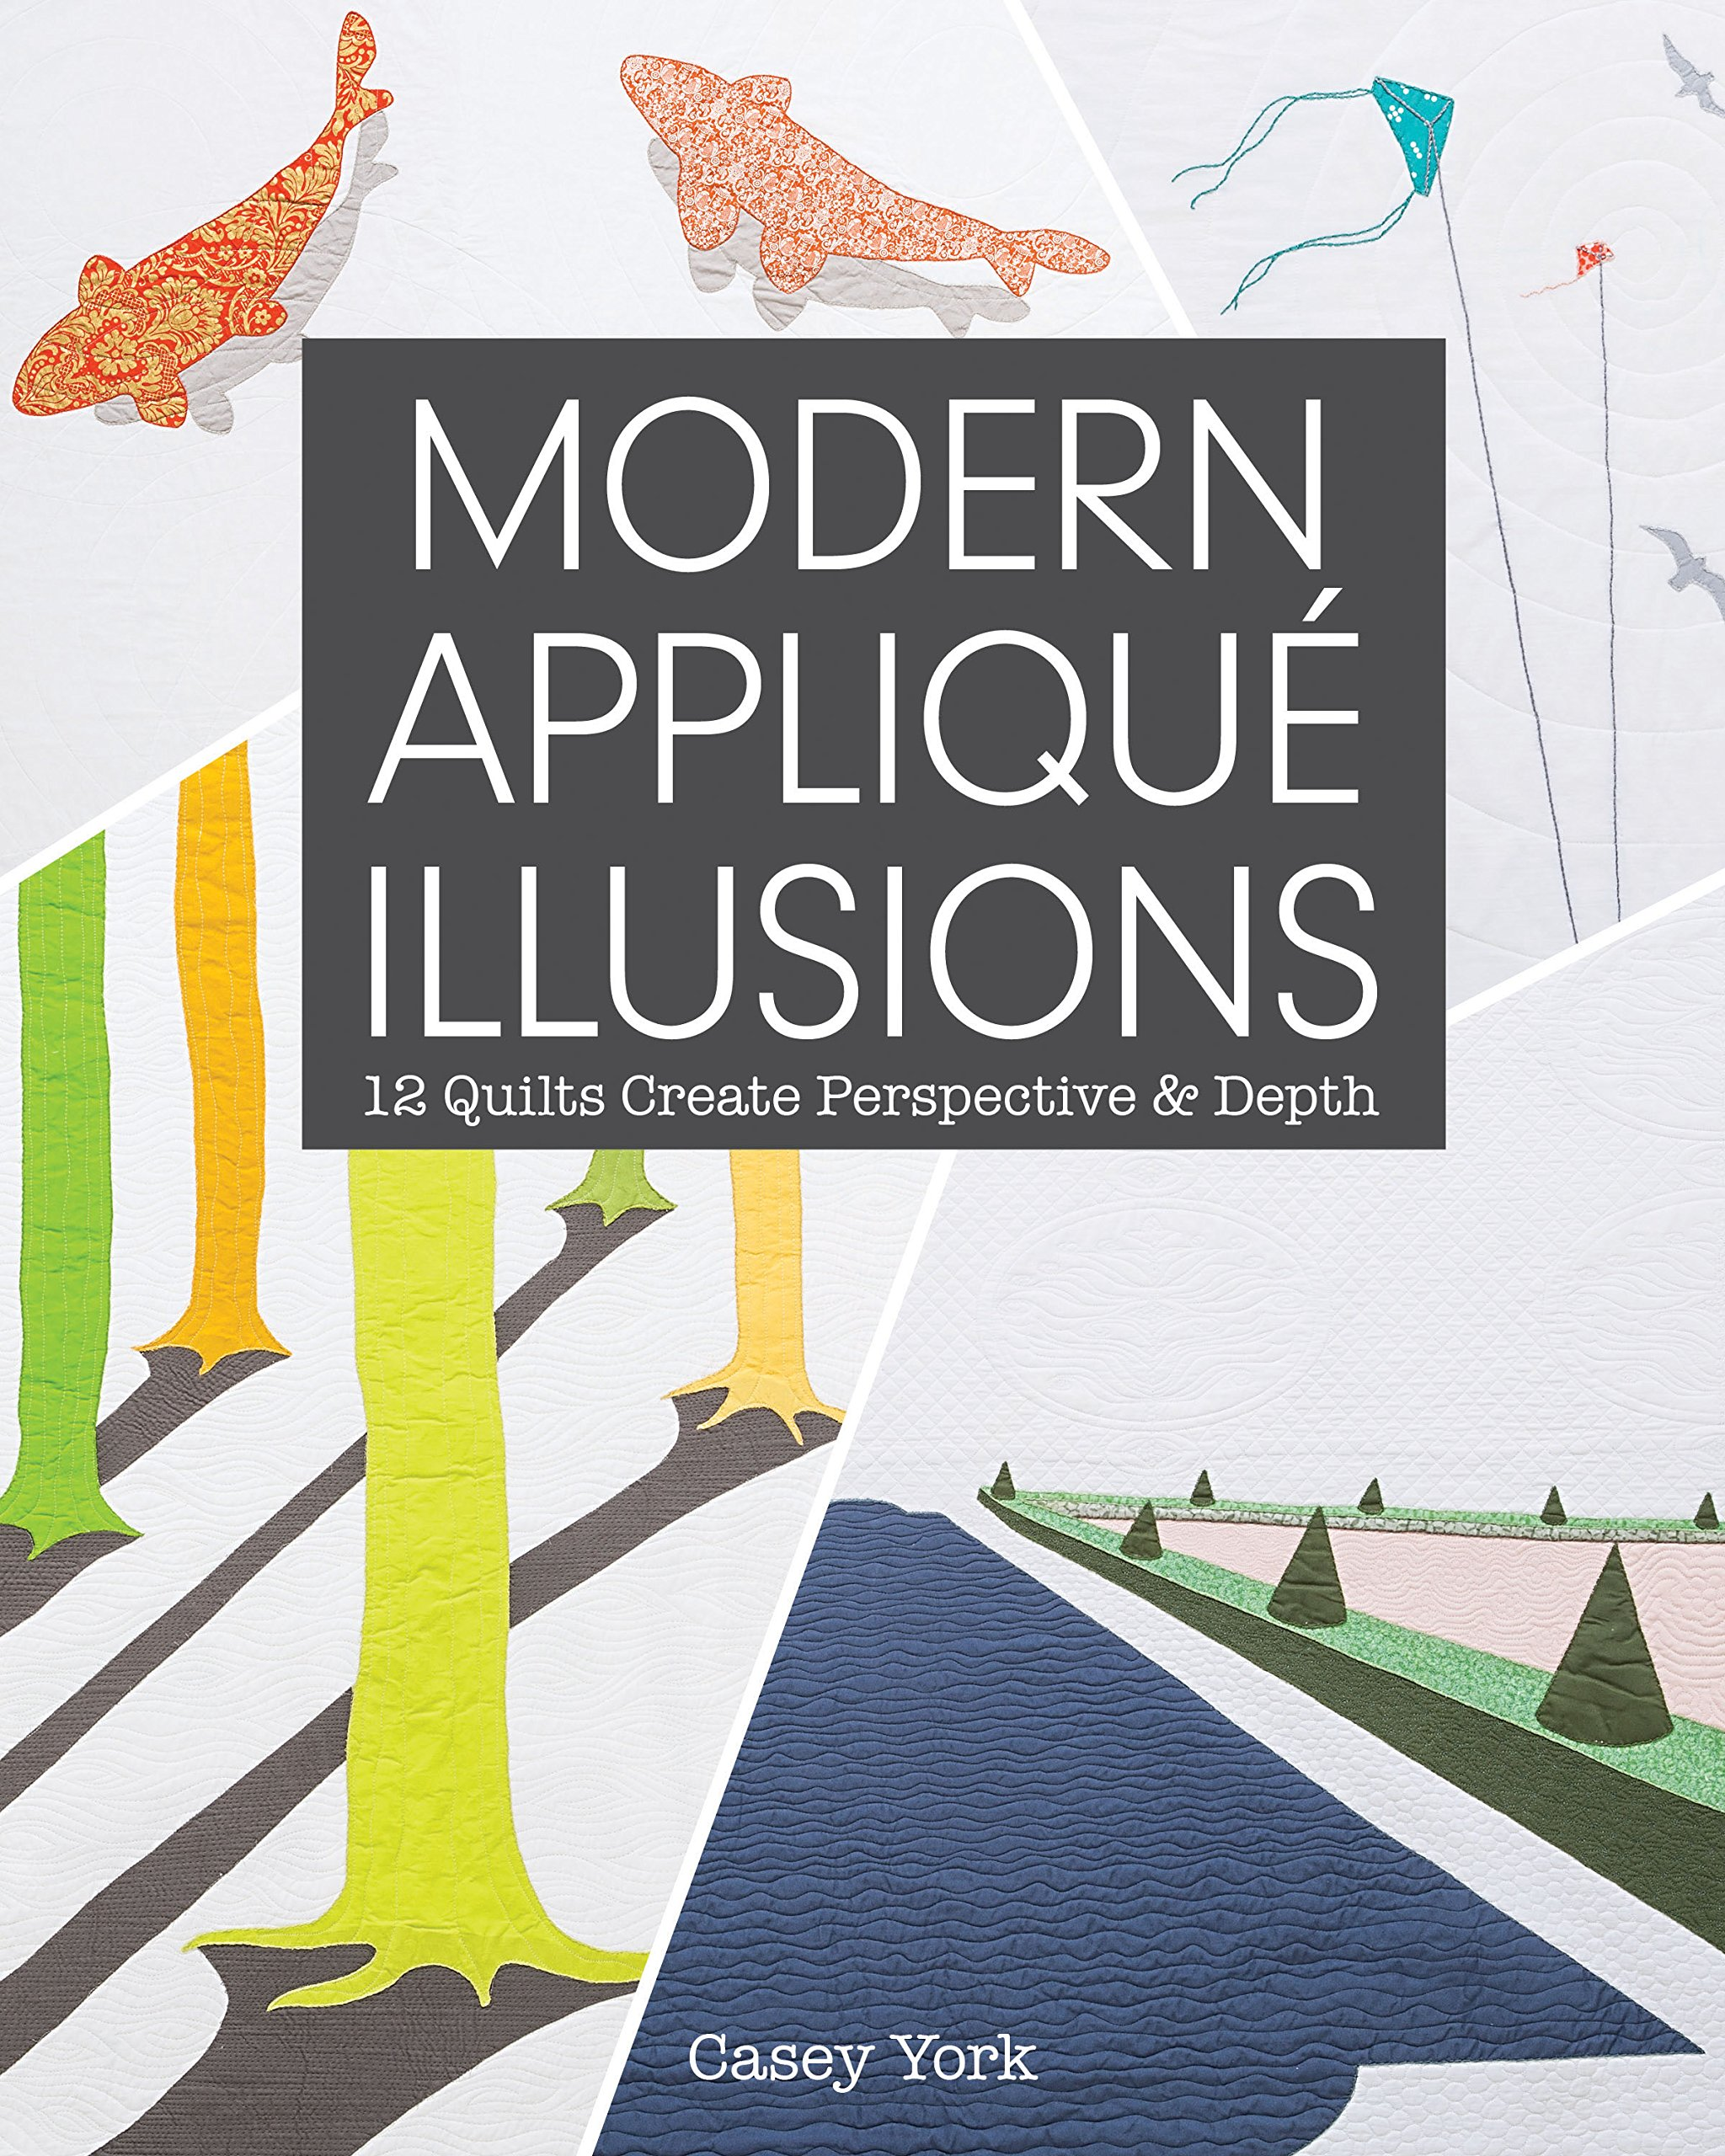 Modern Appliqué Illusions: 12 Quilts Create Perspective & Depth